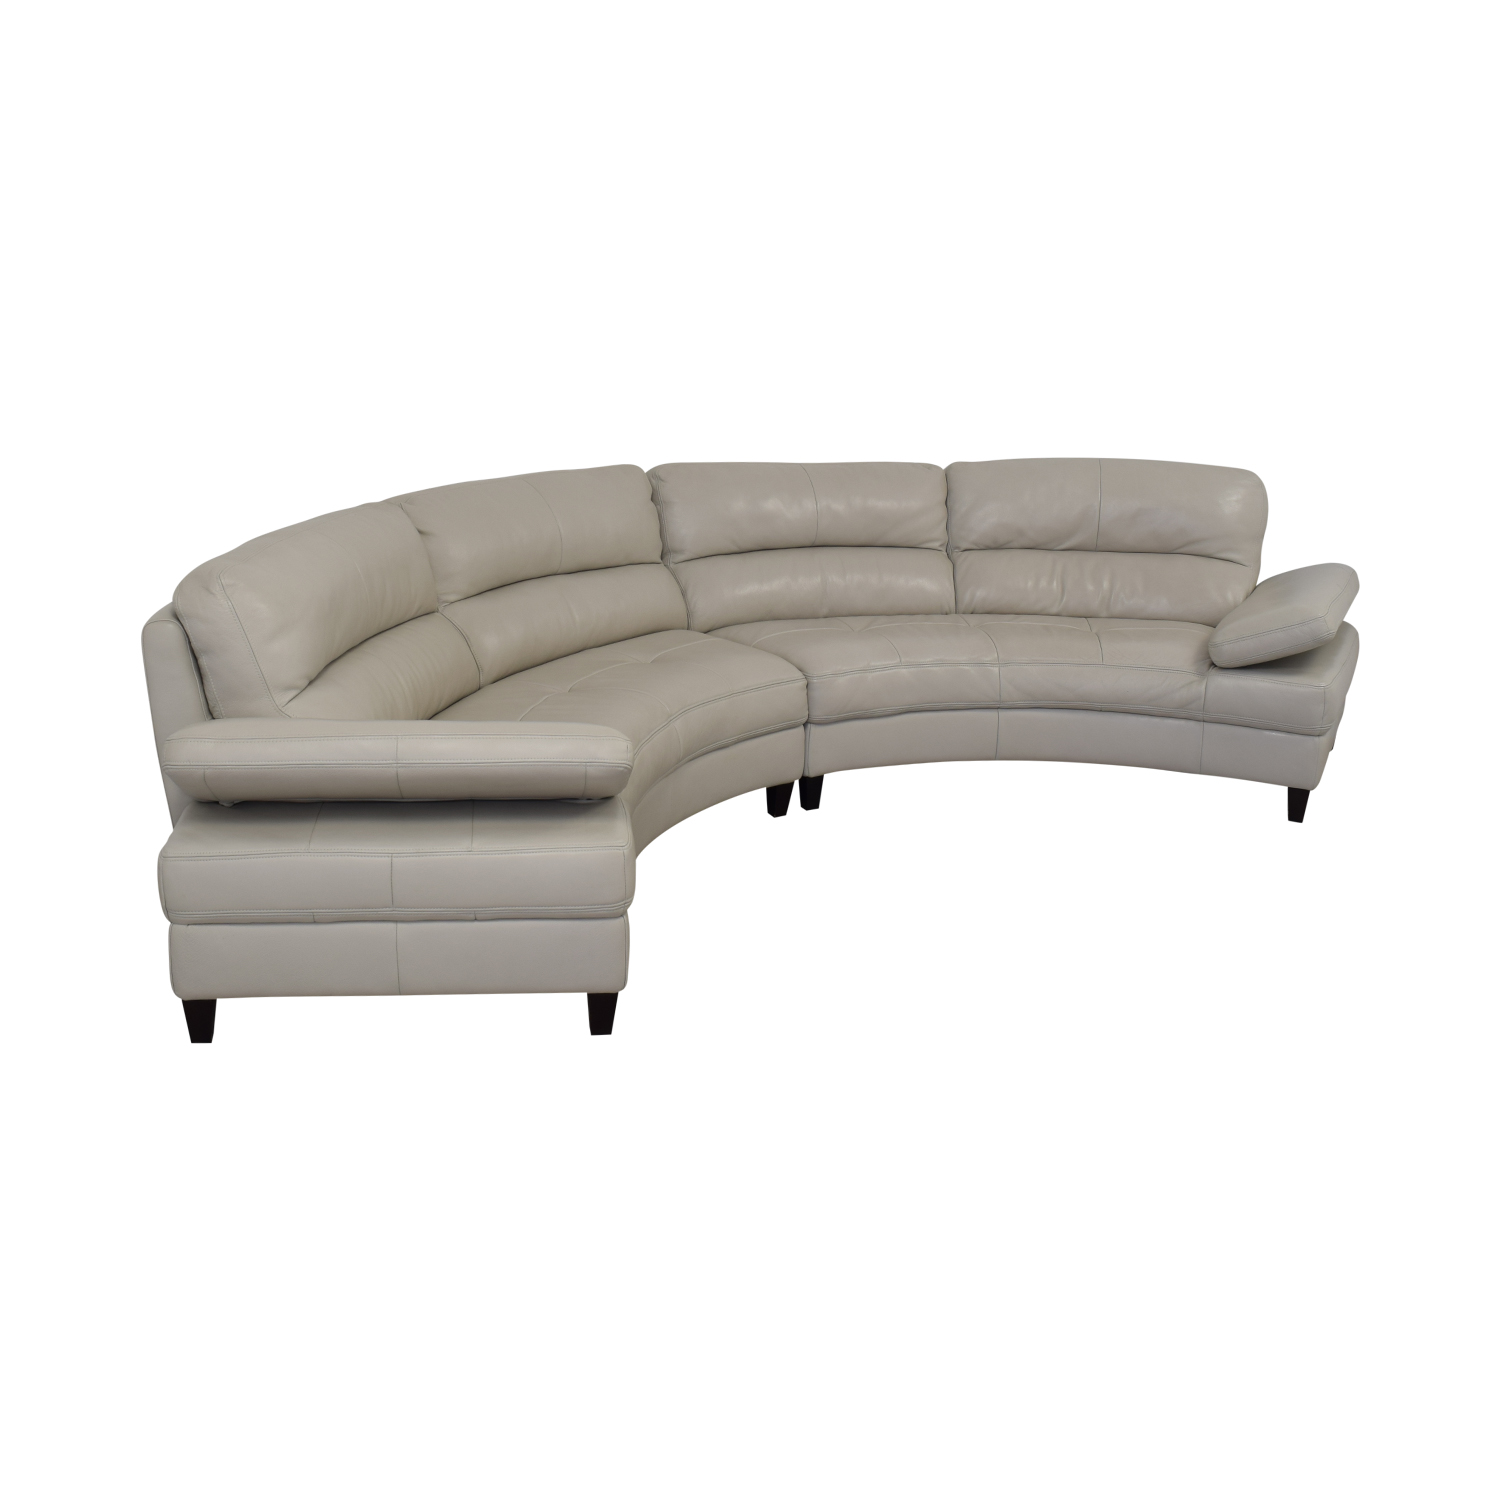 buy Macy's Leather Curved Sofa Macy's Sectionals